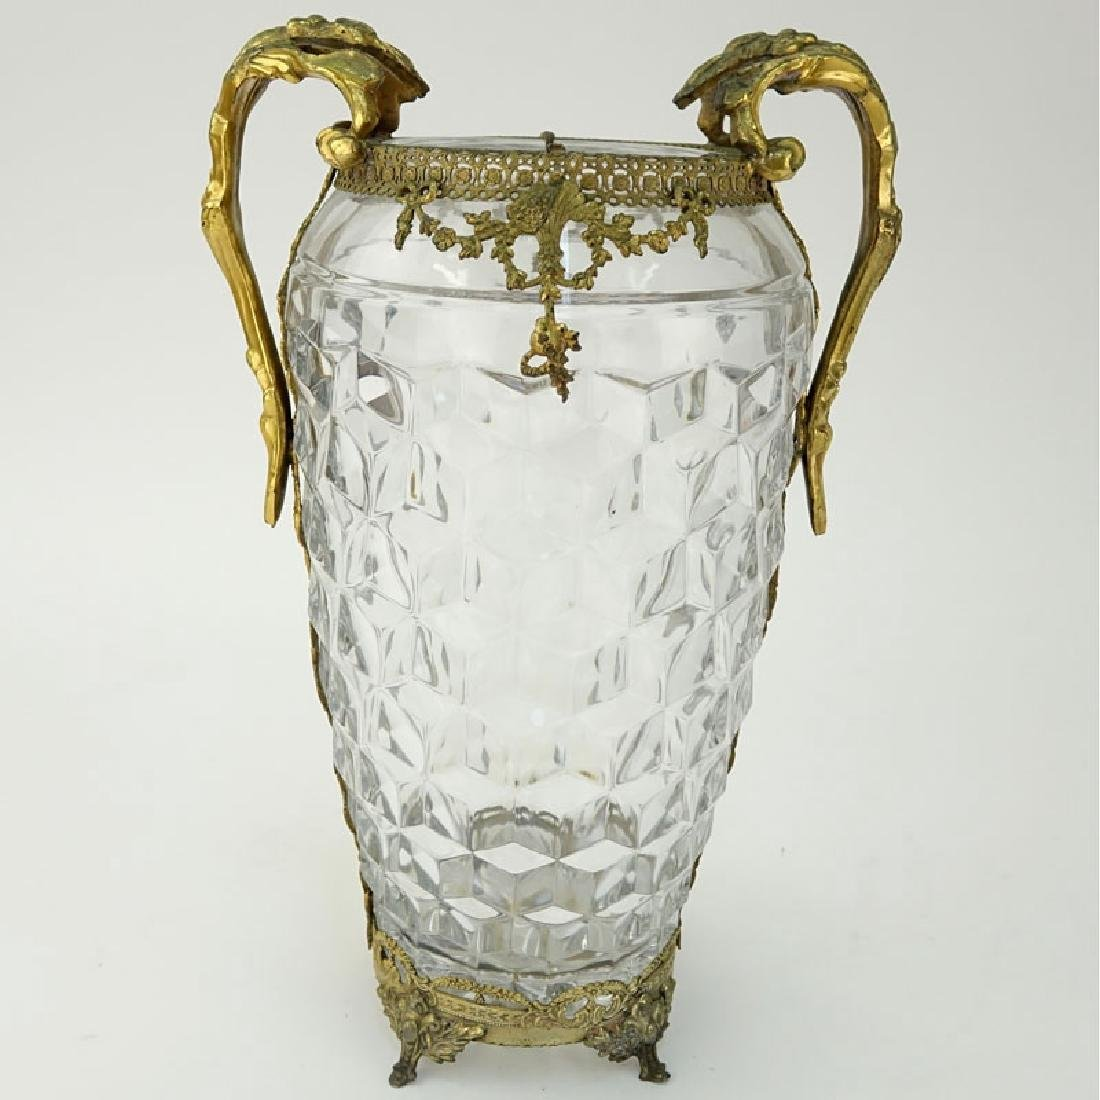 Antique French Baccarat Style Glass Vase with Brass - 2